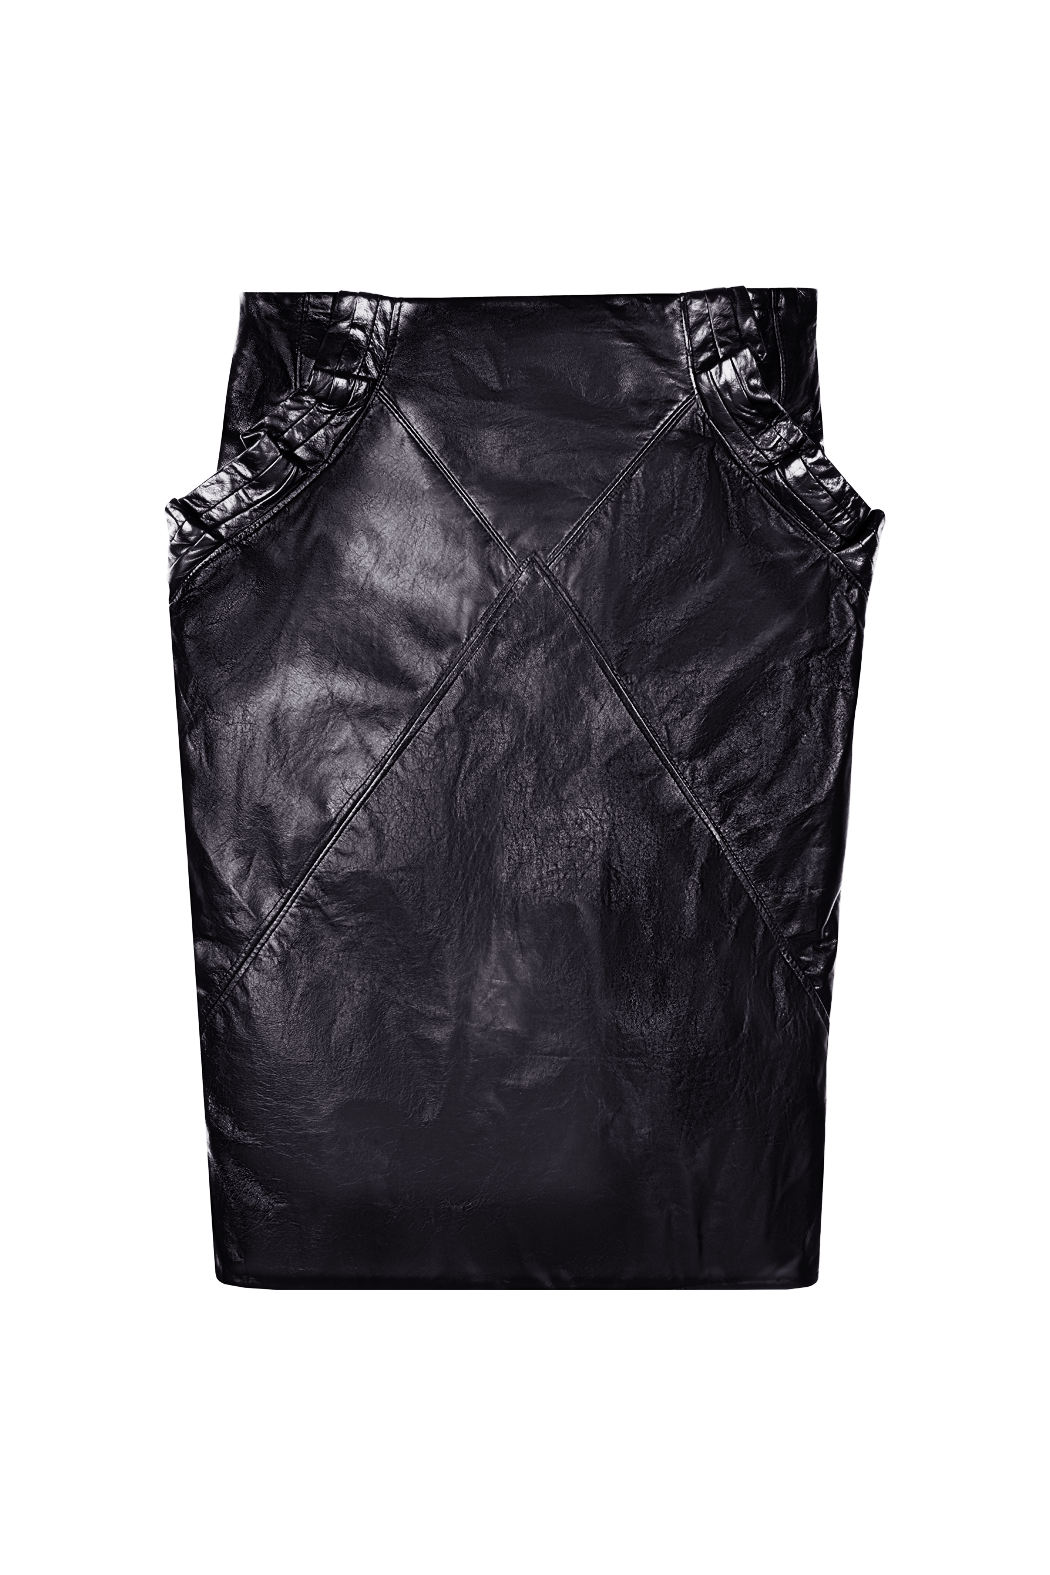 Black Leather Knee Length Skirt with Ruffles Flat